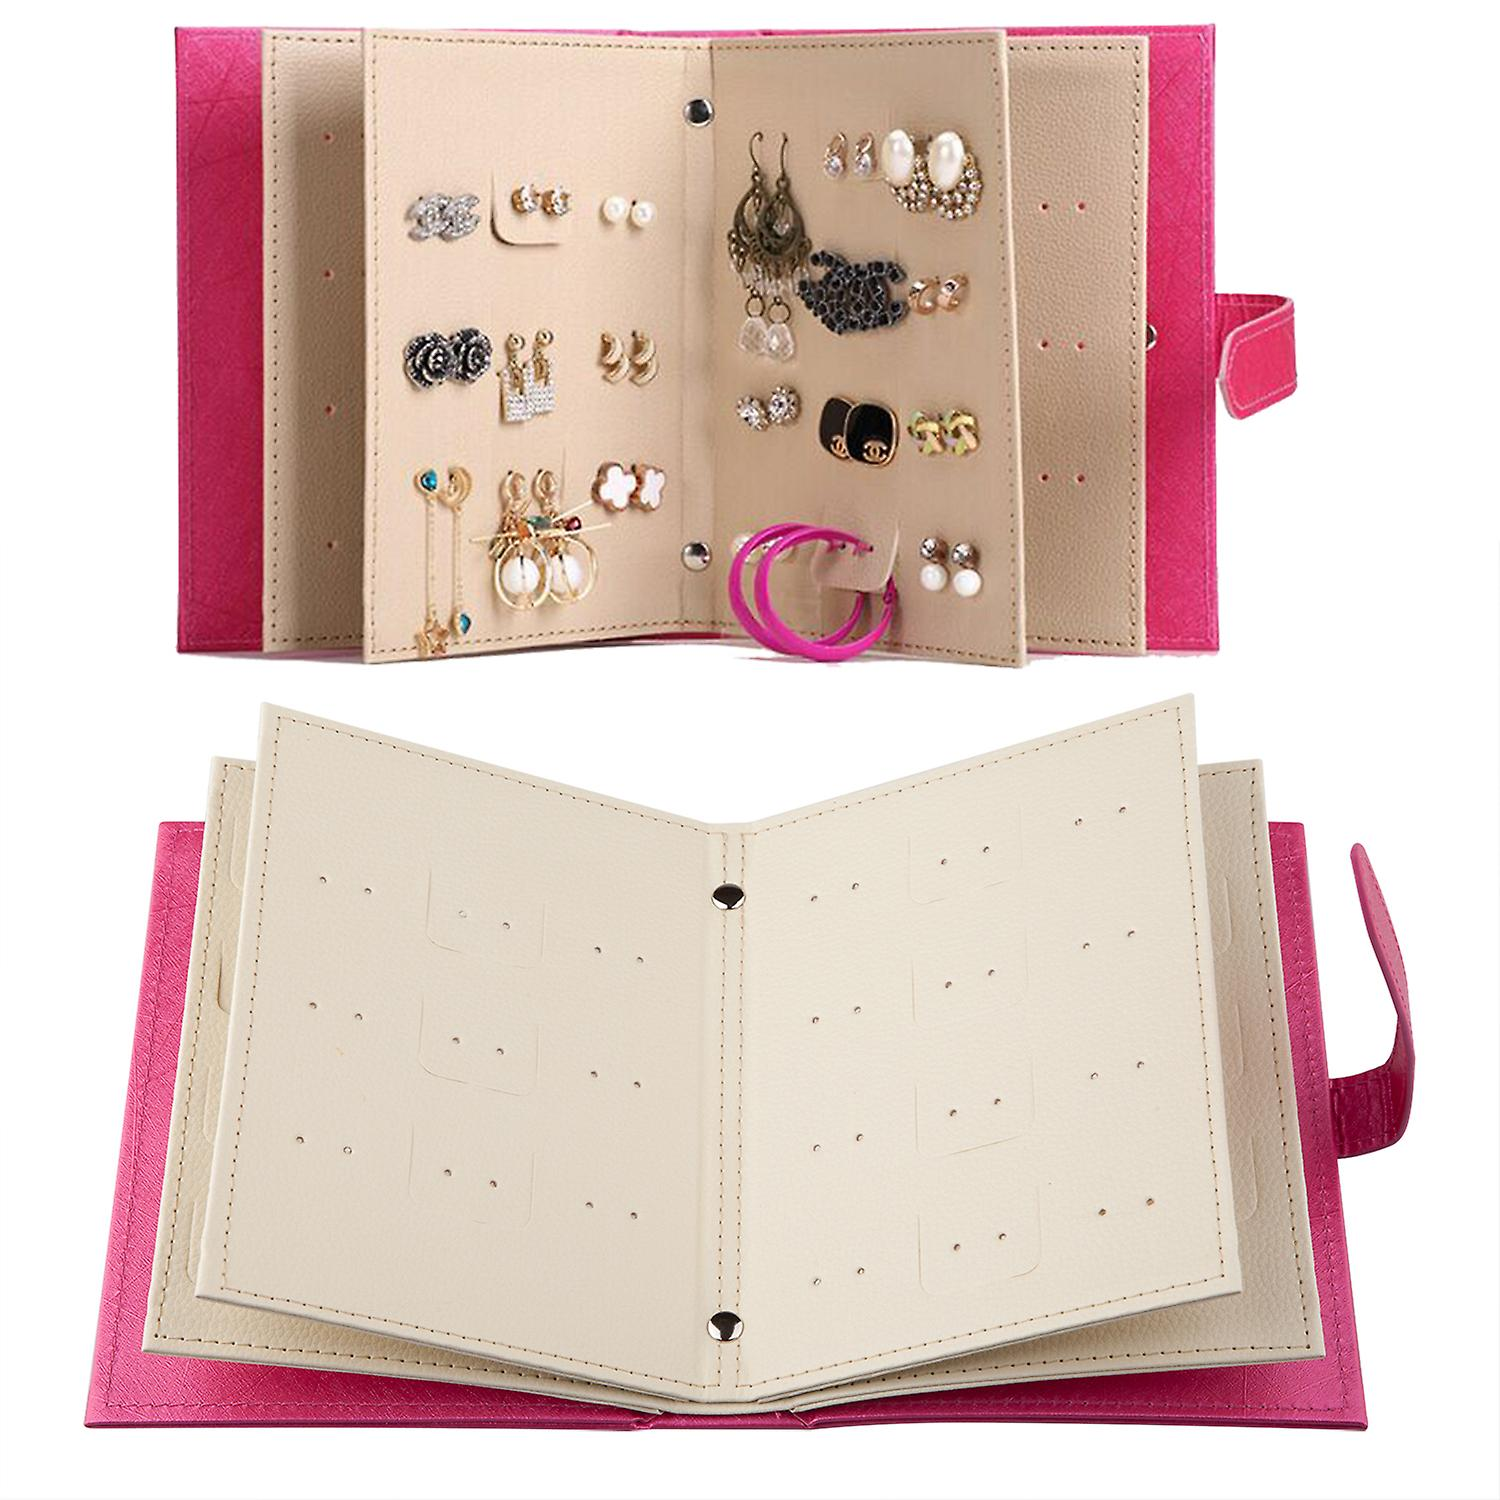 Pierced Earring Book Holder Keeping Earrings Safe Storage Solution - By TRIXES